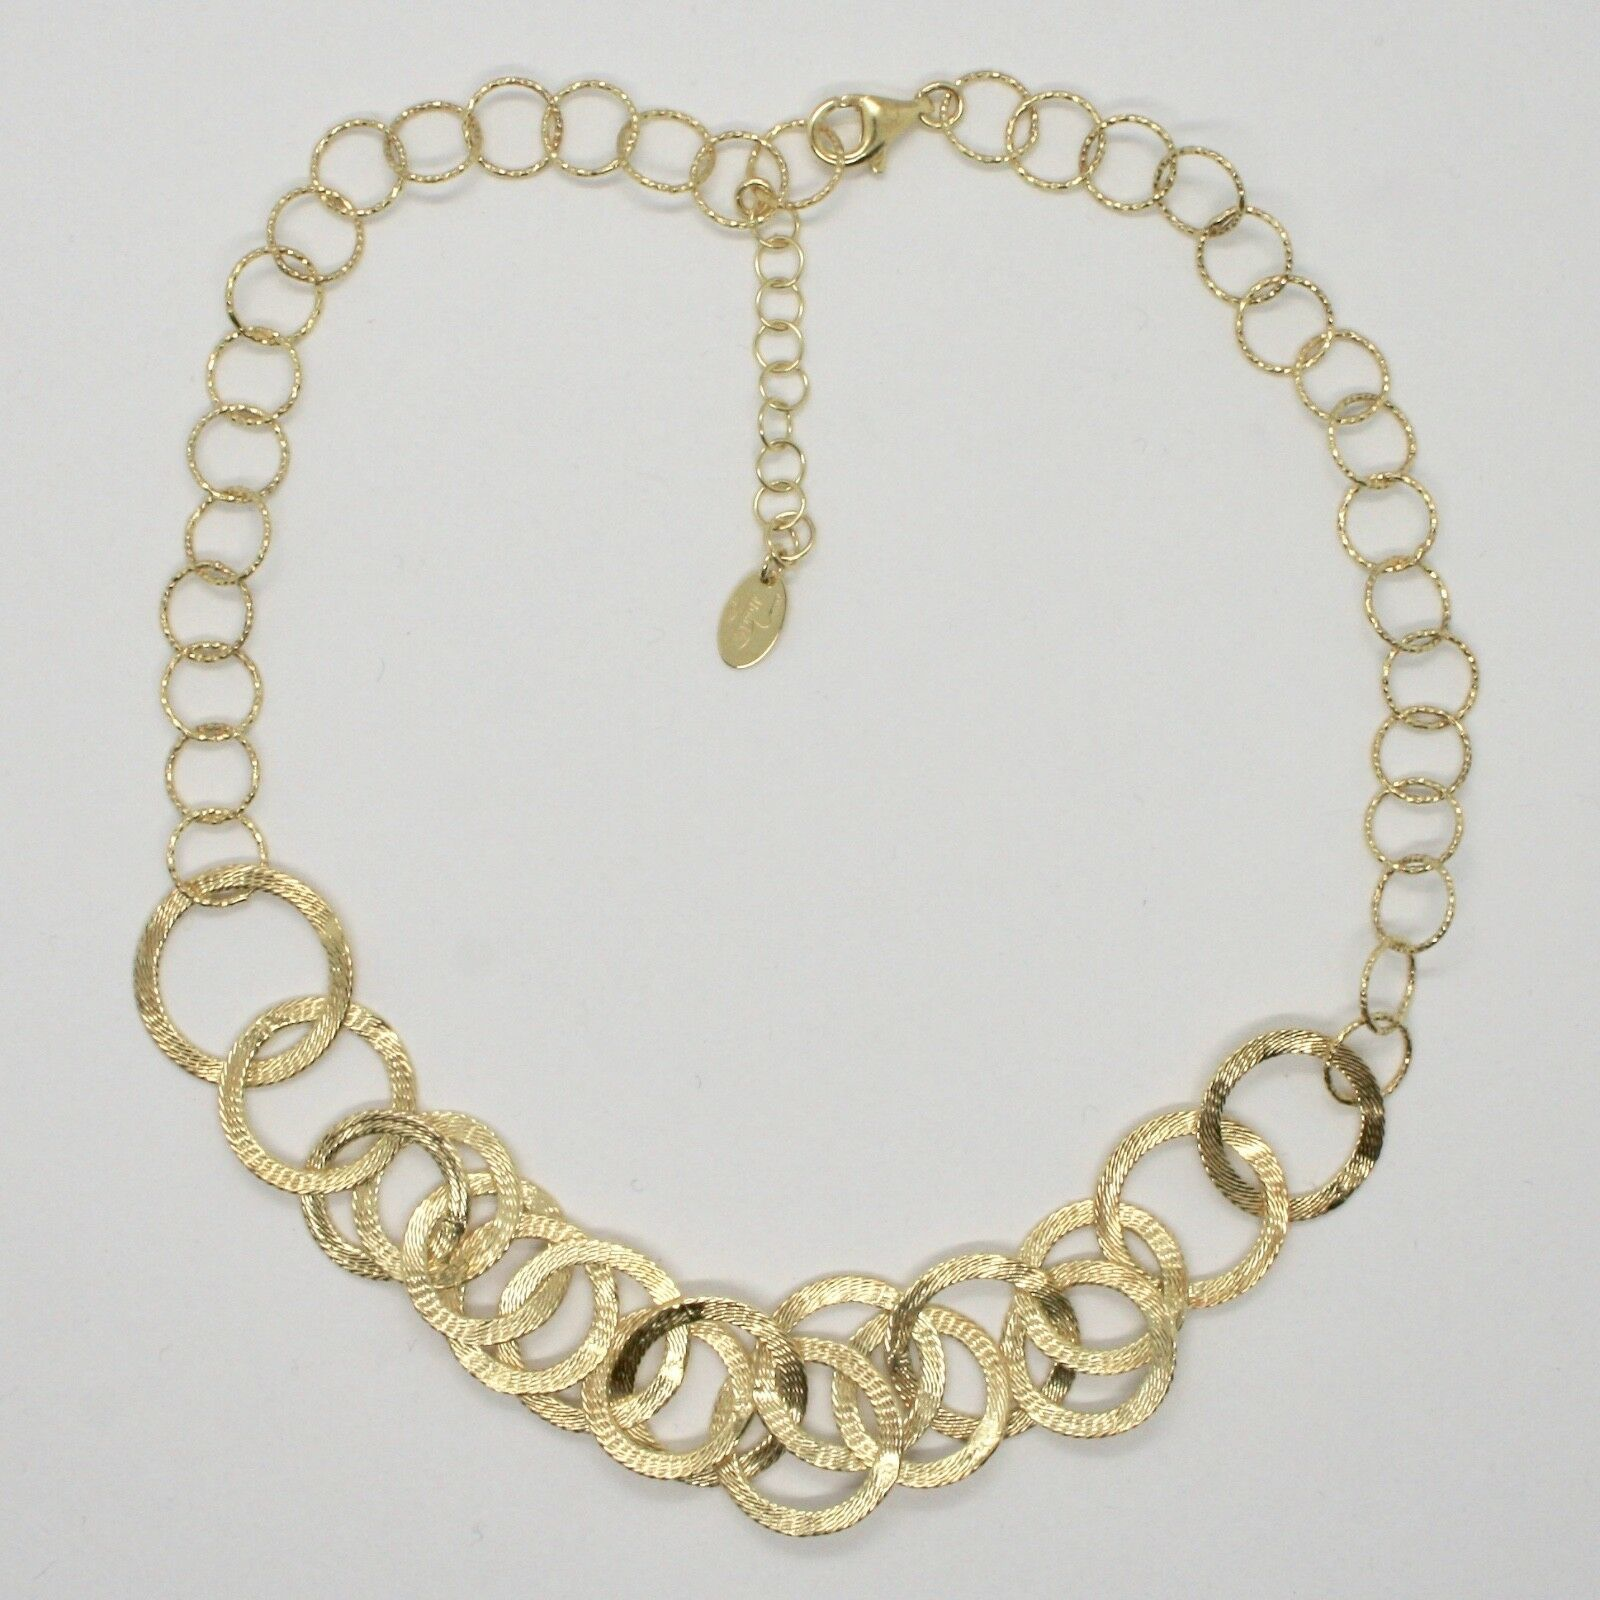 Choker Necklace Silver 925 Foil Gold with Circles by Maria Ielpo Made in Italy -